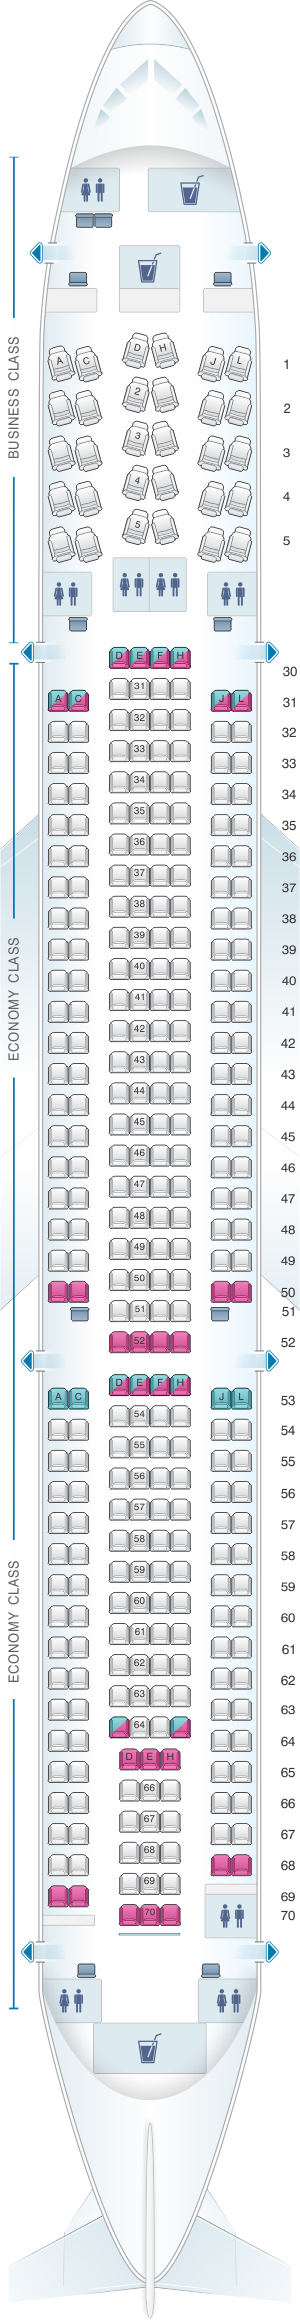 Seat map for Saudi Arabian Airlines Airbus A330 300 343R